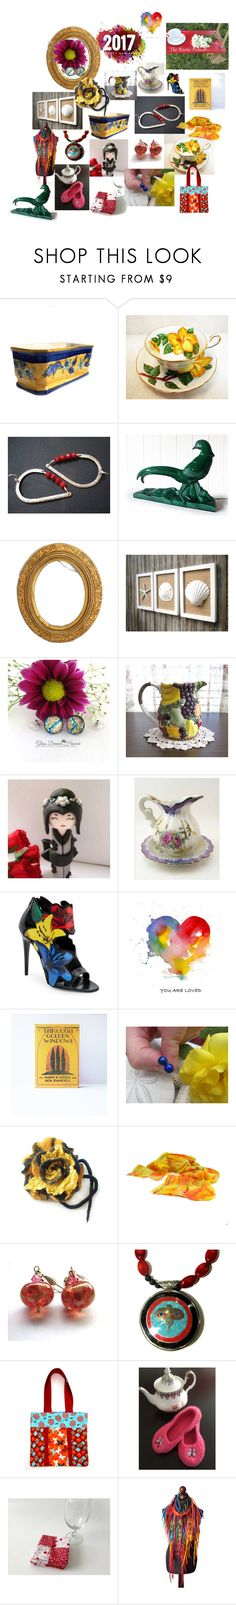 """Etsy Gift Guide for 2017"" by anna-recycle ❤ liked on Polyvore featuring modern, rustic and vintage"